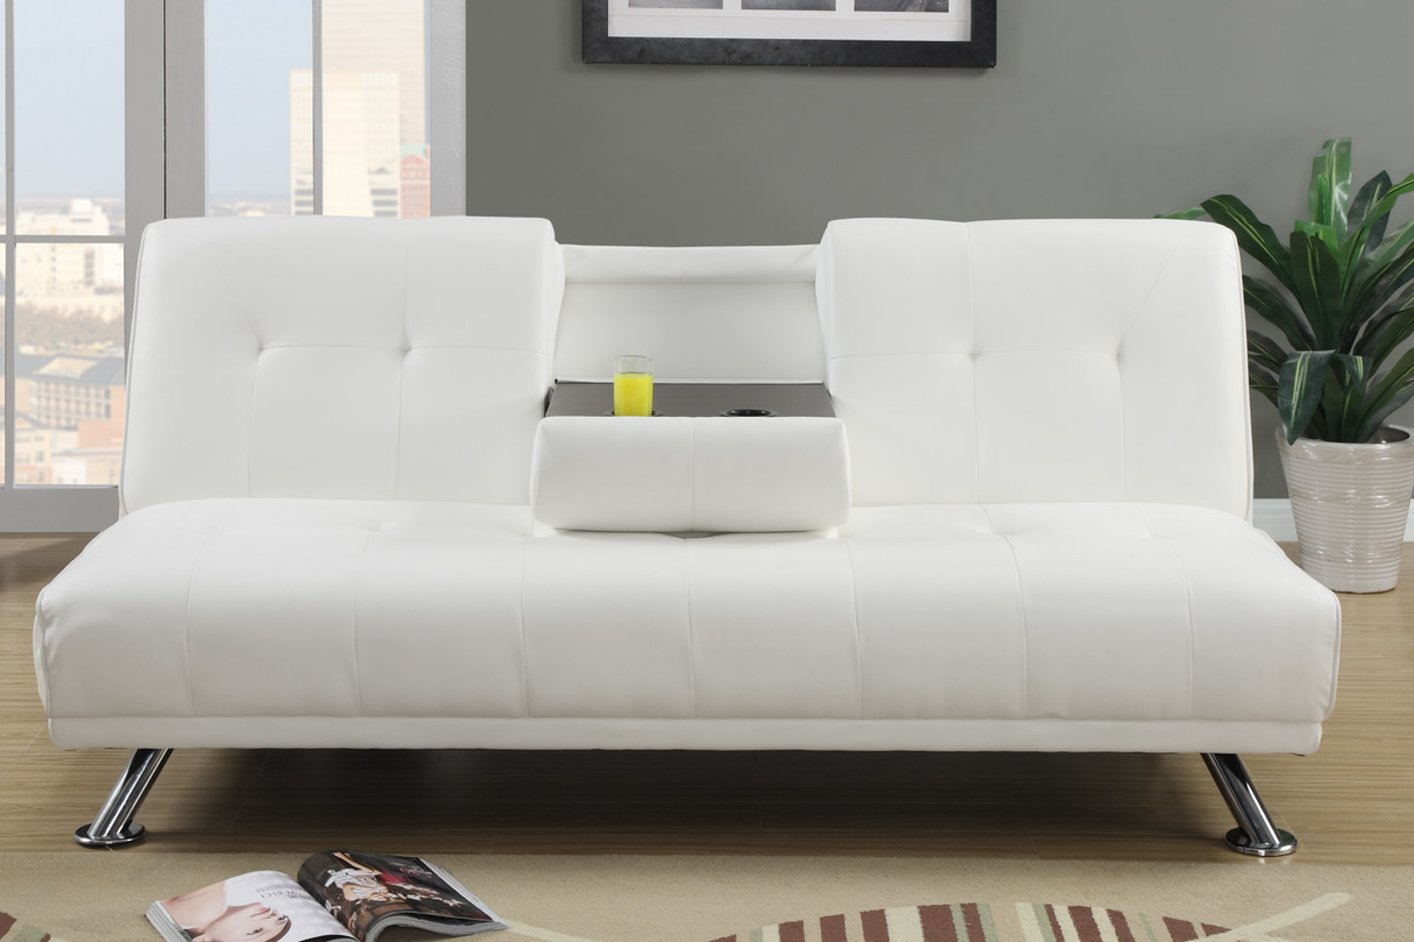 Poundex F7029 White Twin Size Leather Sofa Bed Steal A Sofa Furniture Outlet Los Angeles Ca